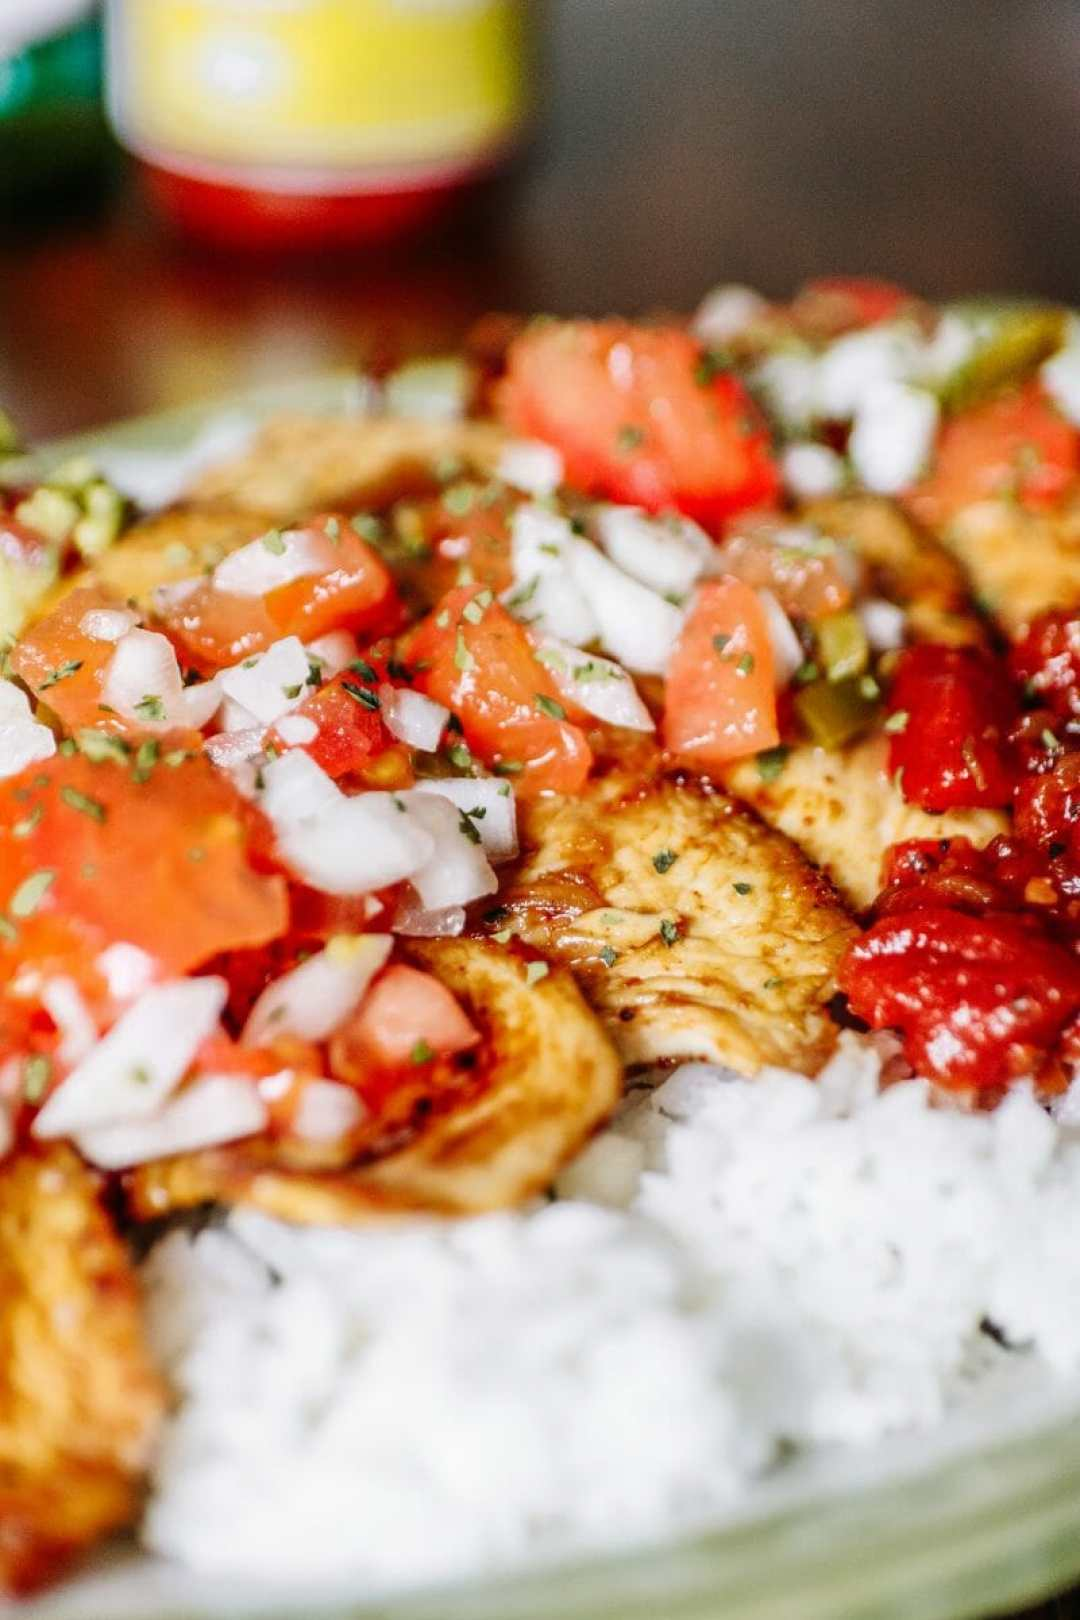 Ale 8 One Mexican Lime Grilled Chicken by JC Phelps of JCP Eats, A Kentucky-Based Food Blog